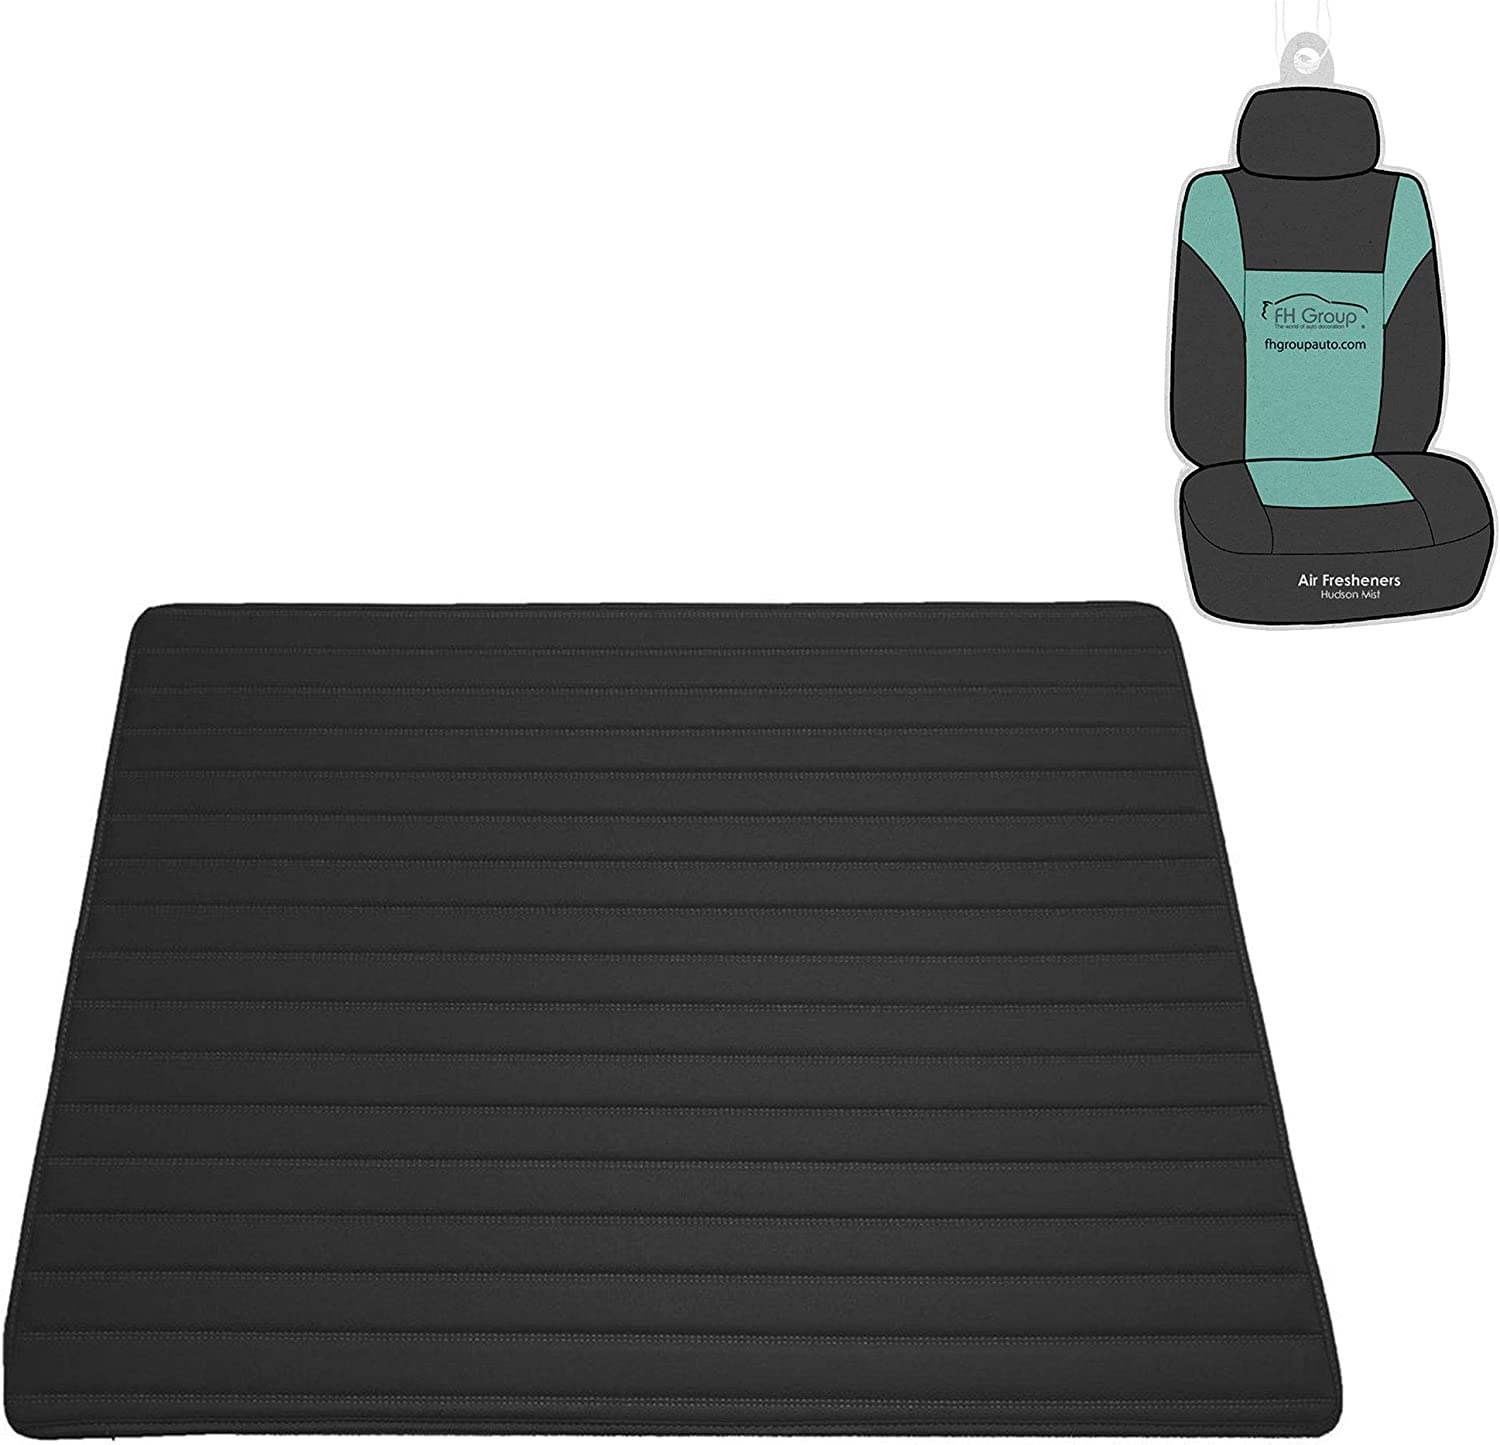 """FH Group F16500 Deluxe Heavy-Duty Faux Leather Multi-Purpose Cargo Liner, Striped, 32"""", Black Color - Universal Fit for Trucks, SUVs, and Vans"""